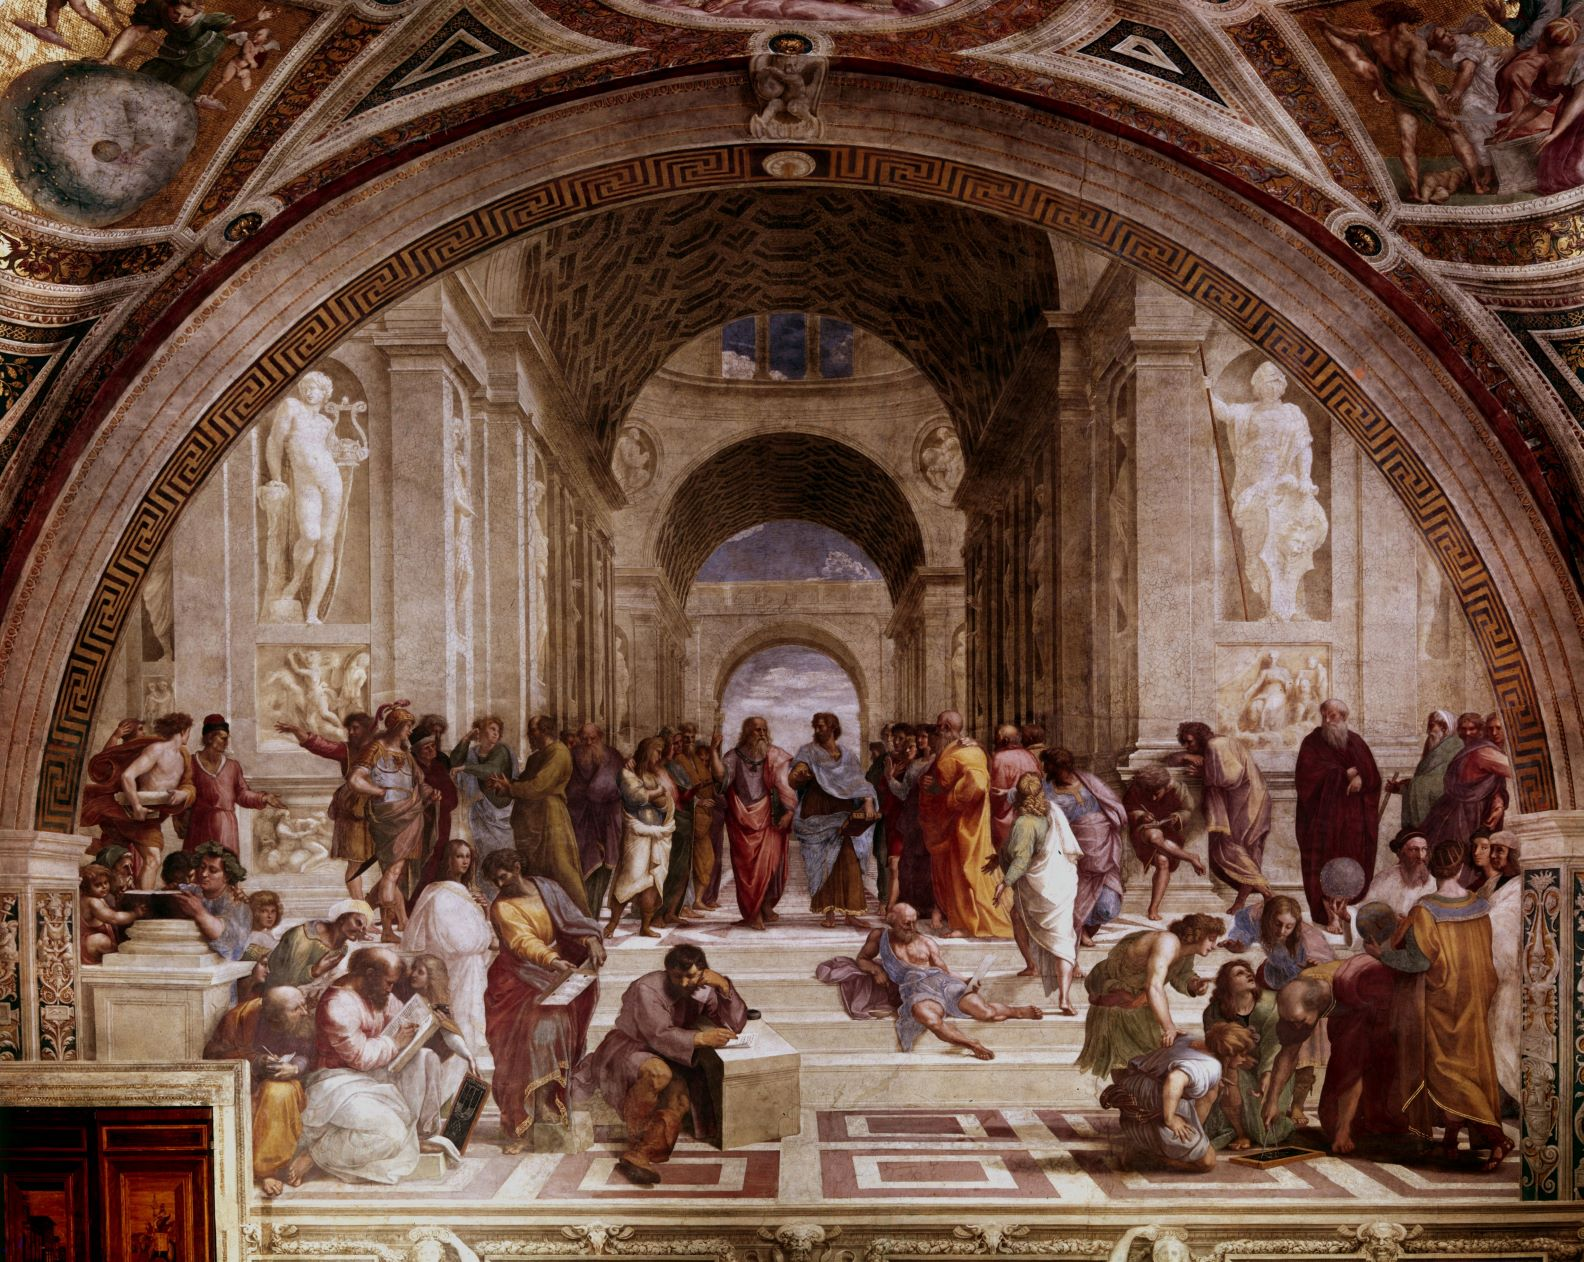 Raphael's painting The School of Athens